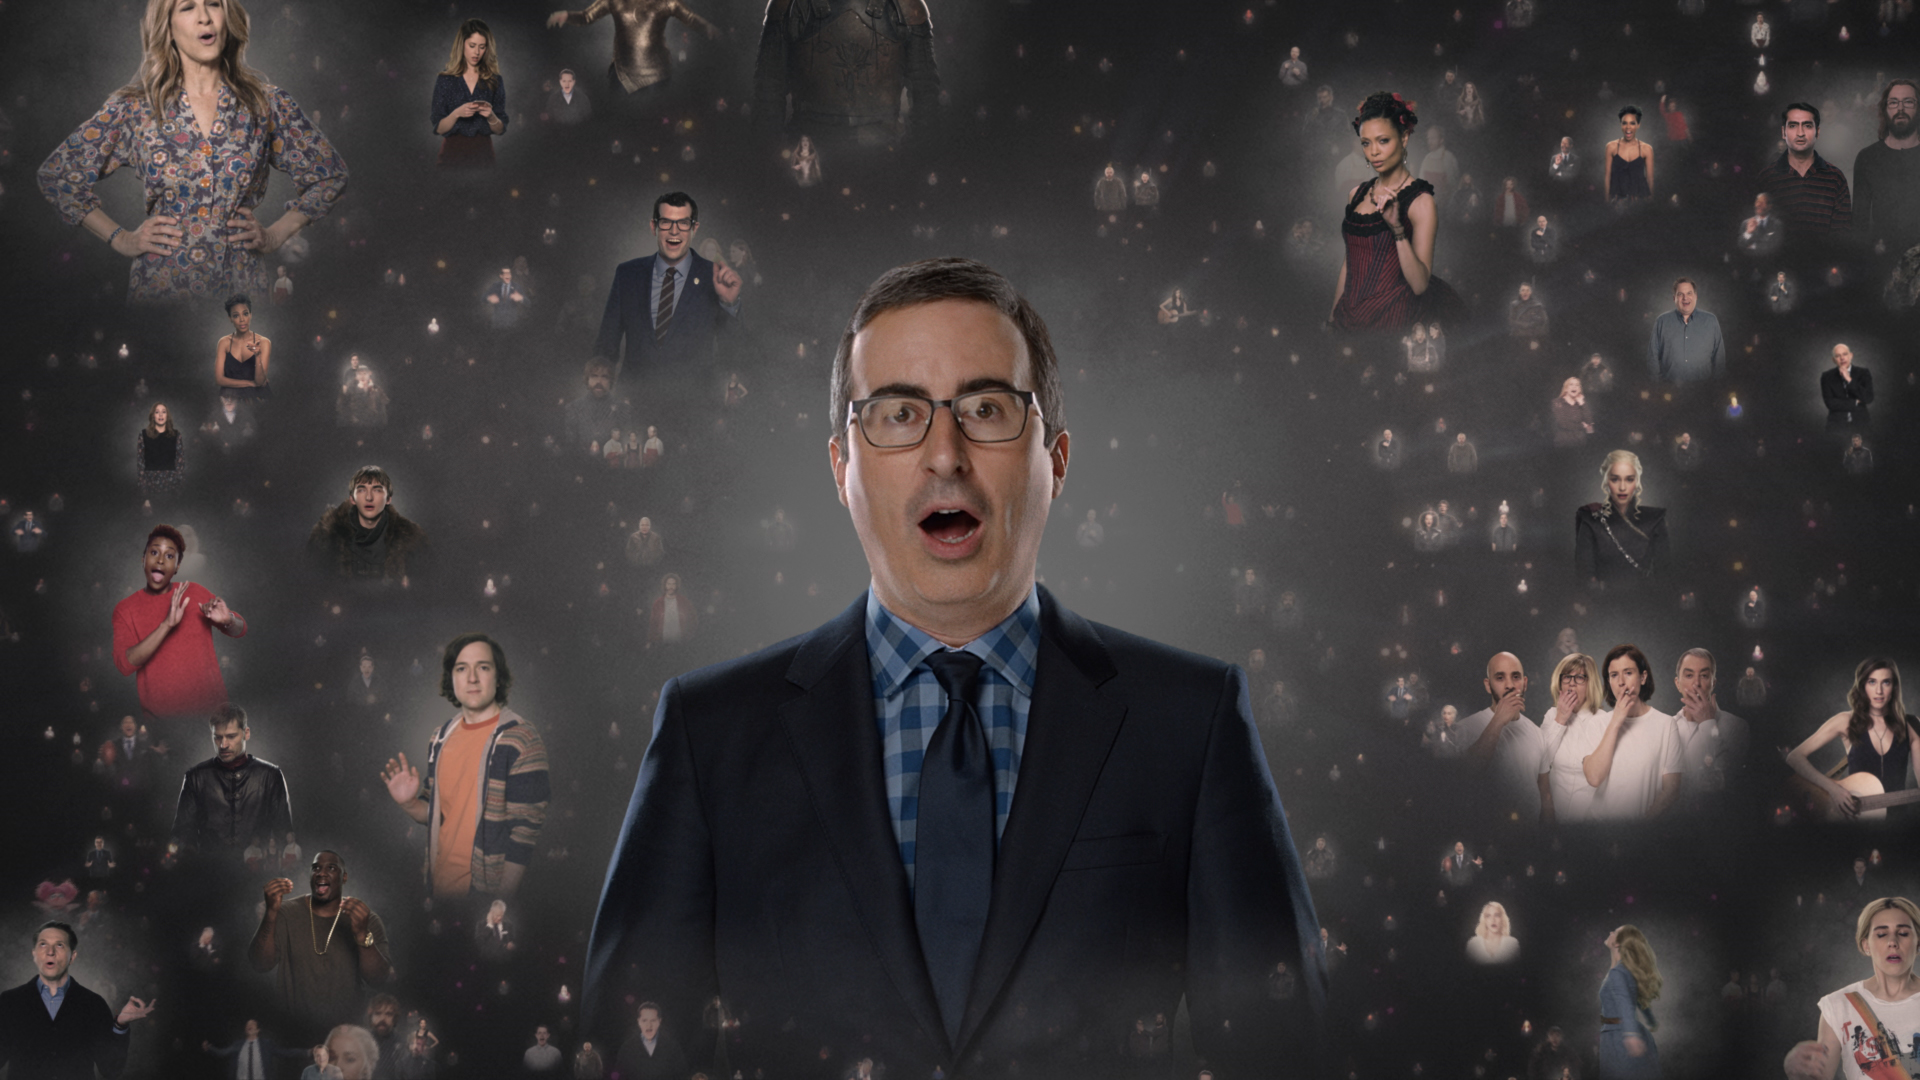 HBO_JohnOliver_129652305_657027_ProRes (1-00-57-07).jpg